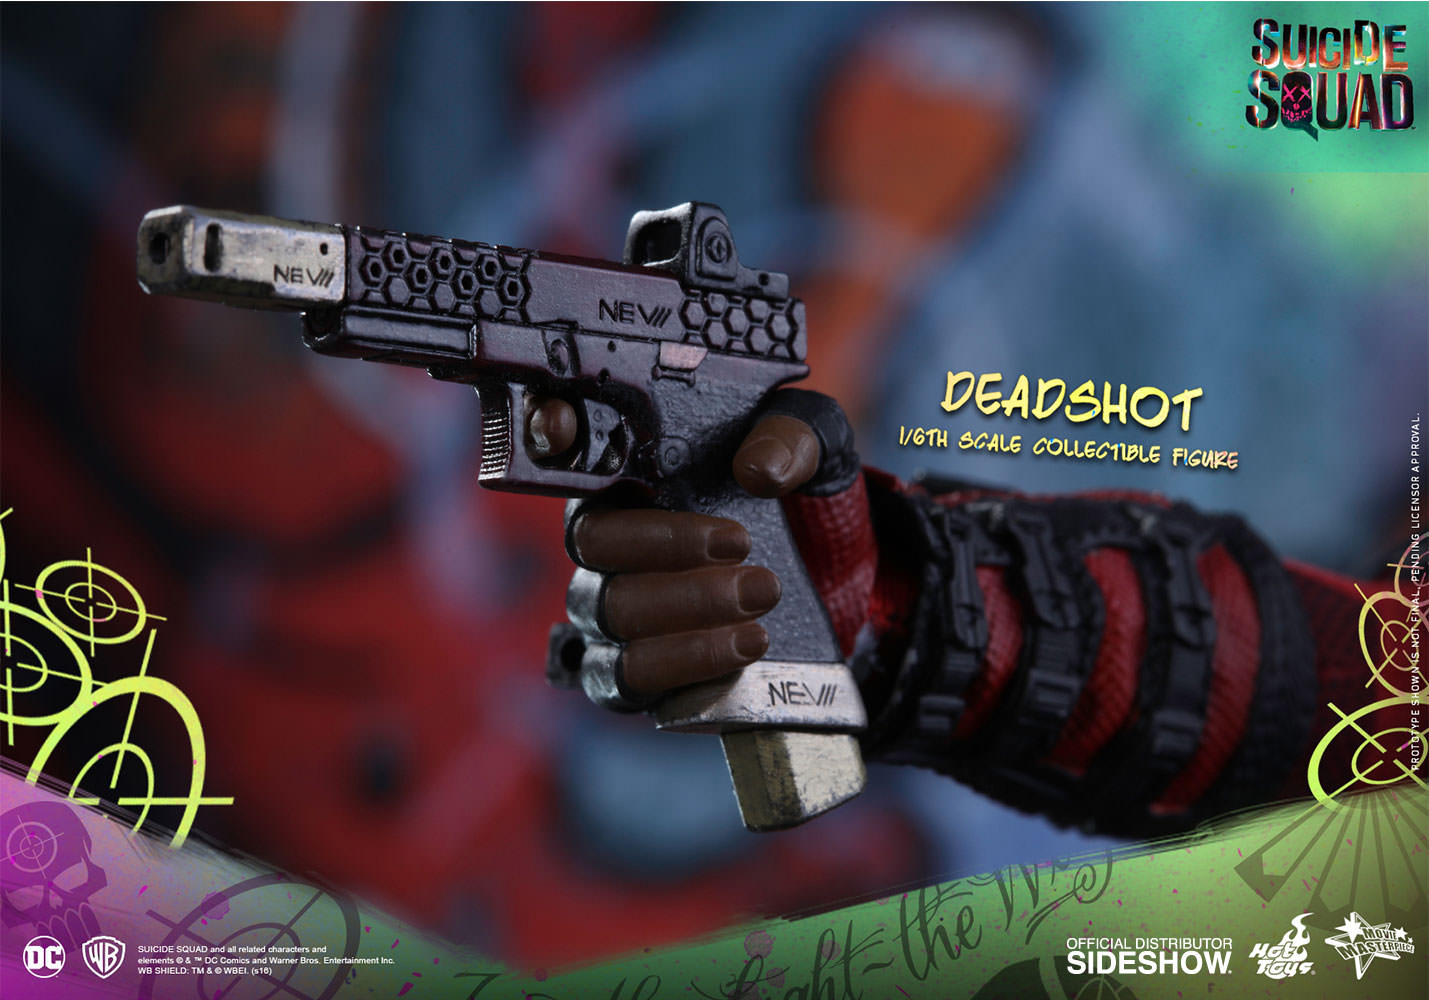 HOT TOYS - SUICIDE SQUAD - Deadshot - Movie Masterpiece